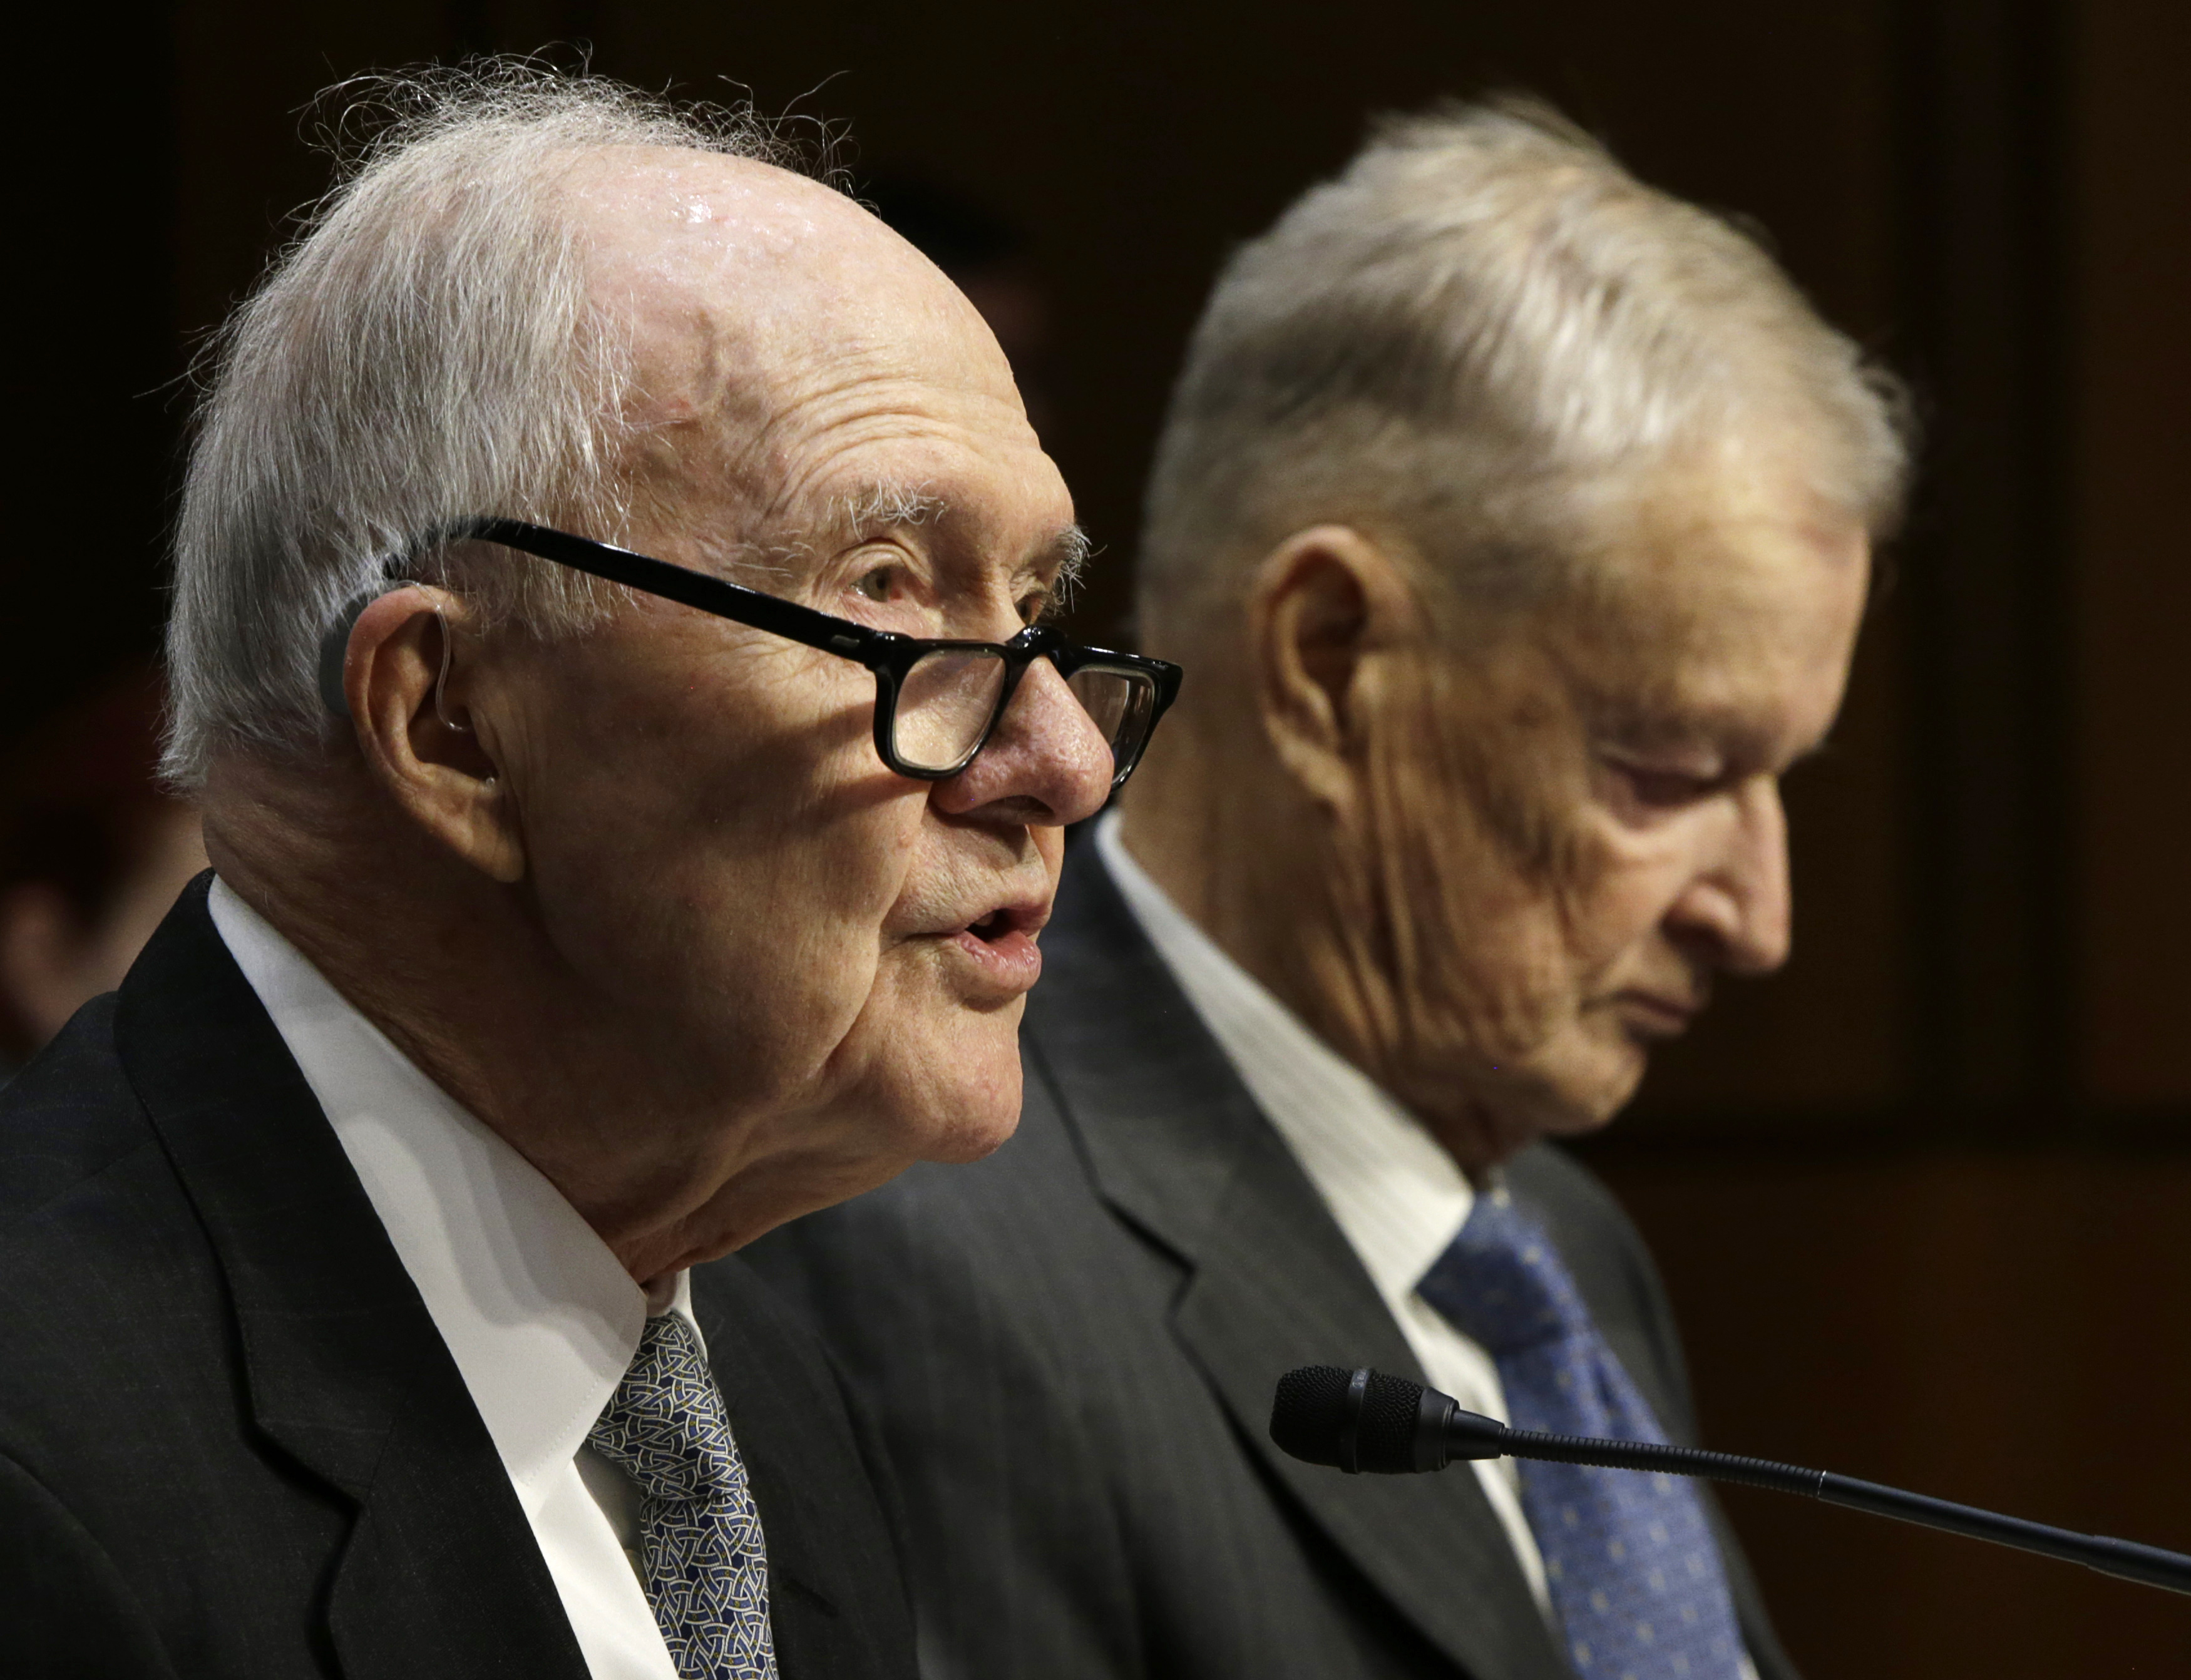 Remembering Brent Scowcroft, a true national security maverick